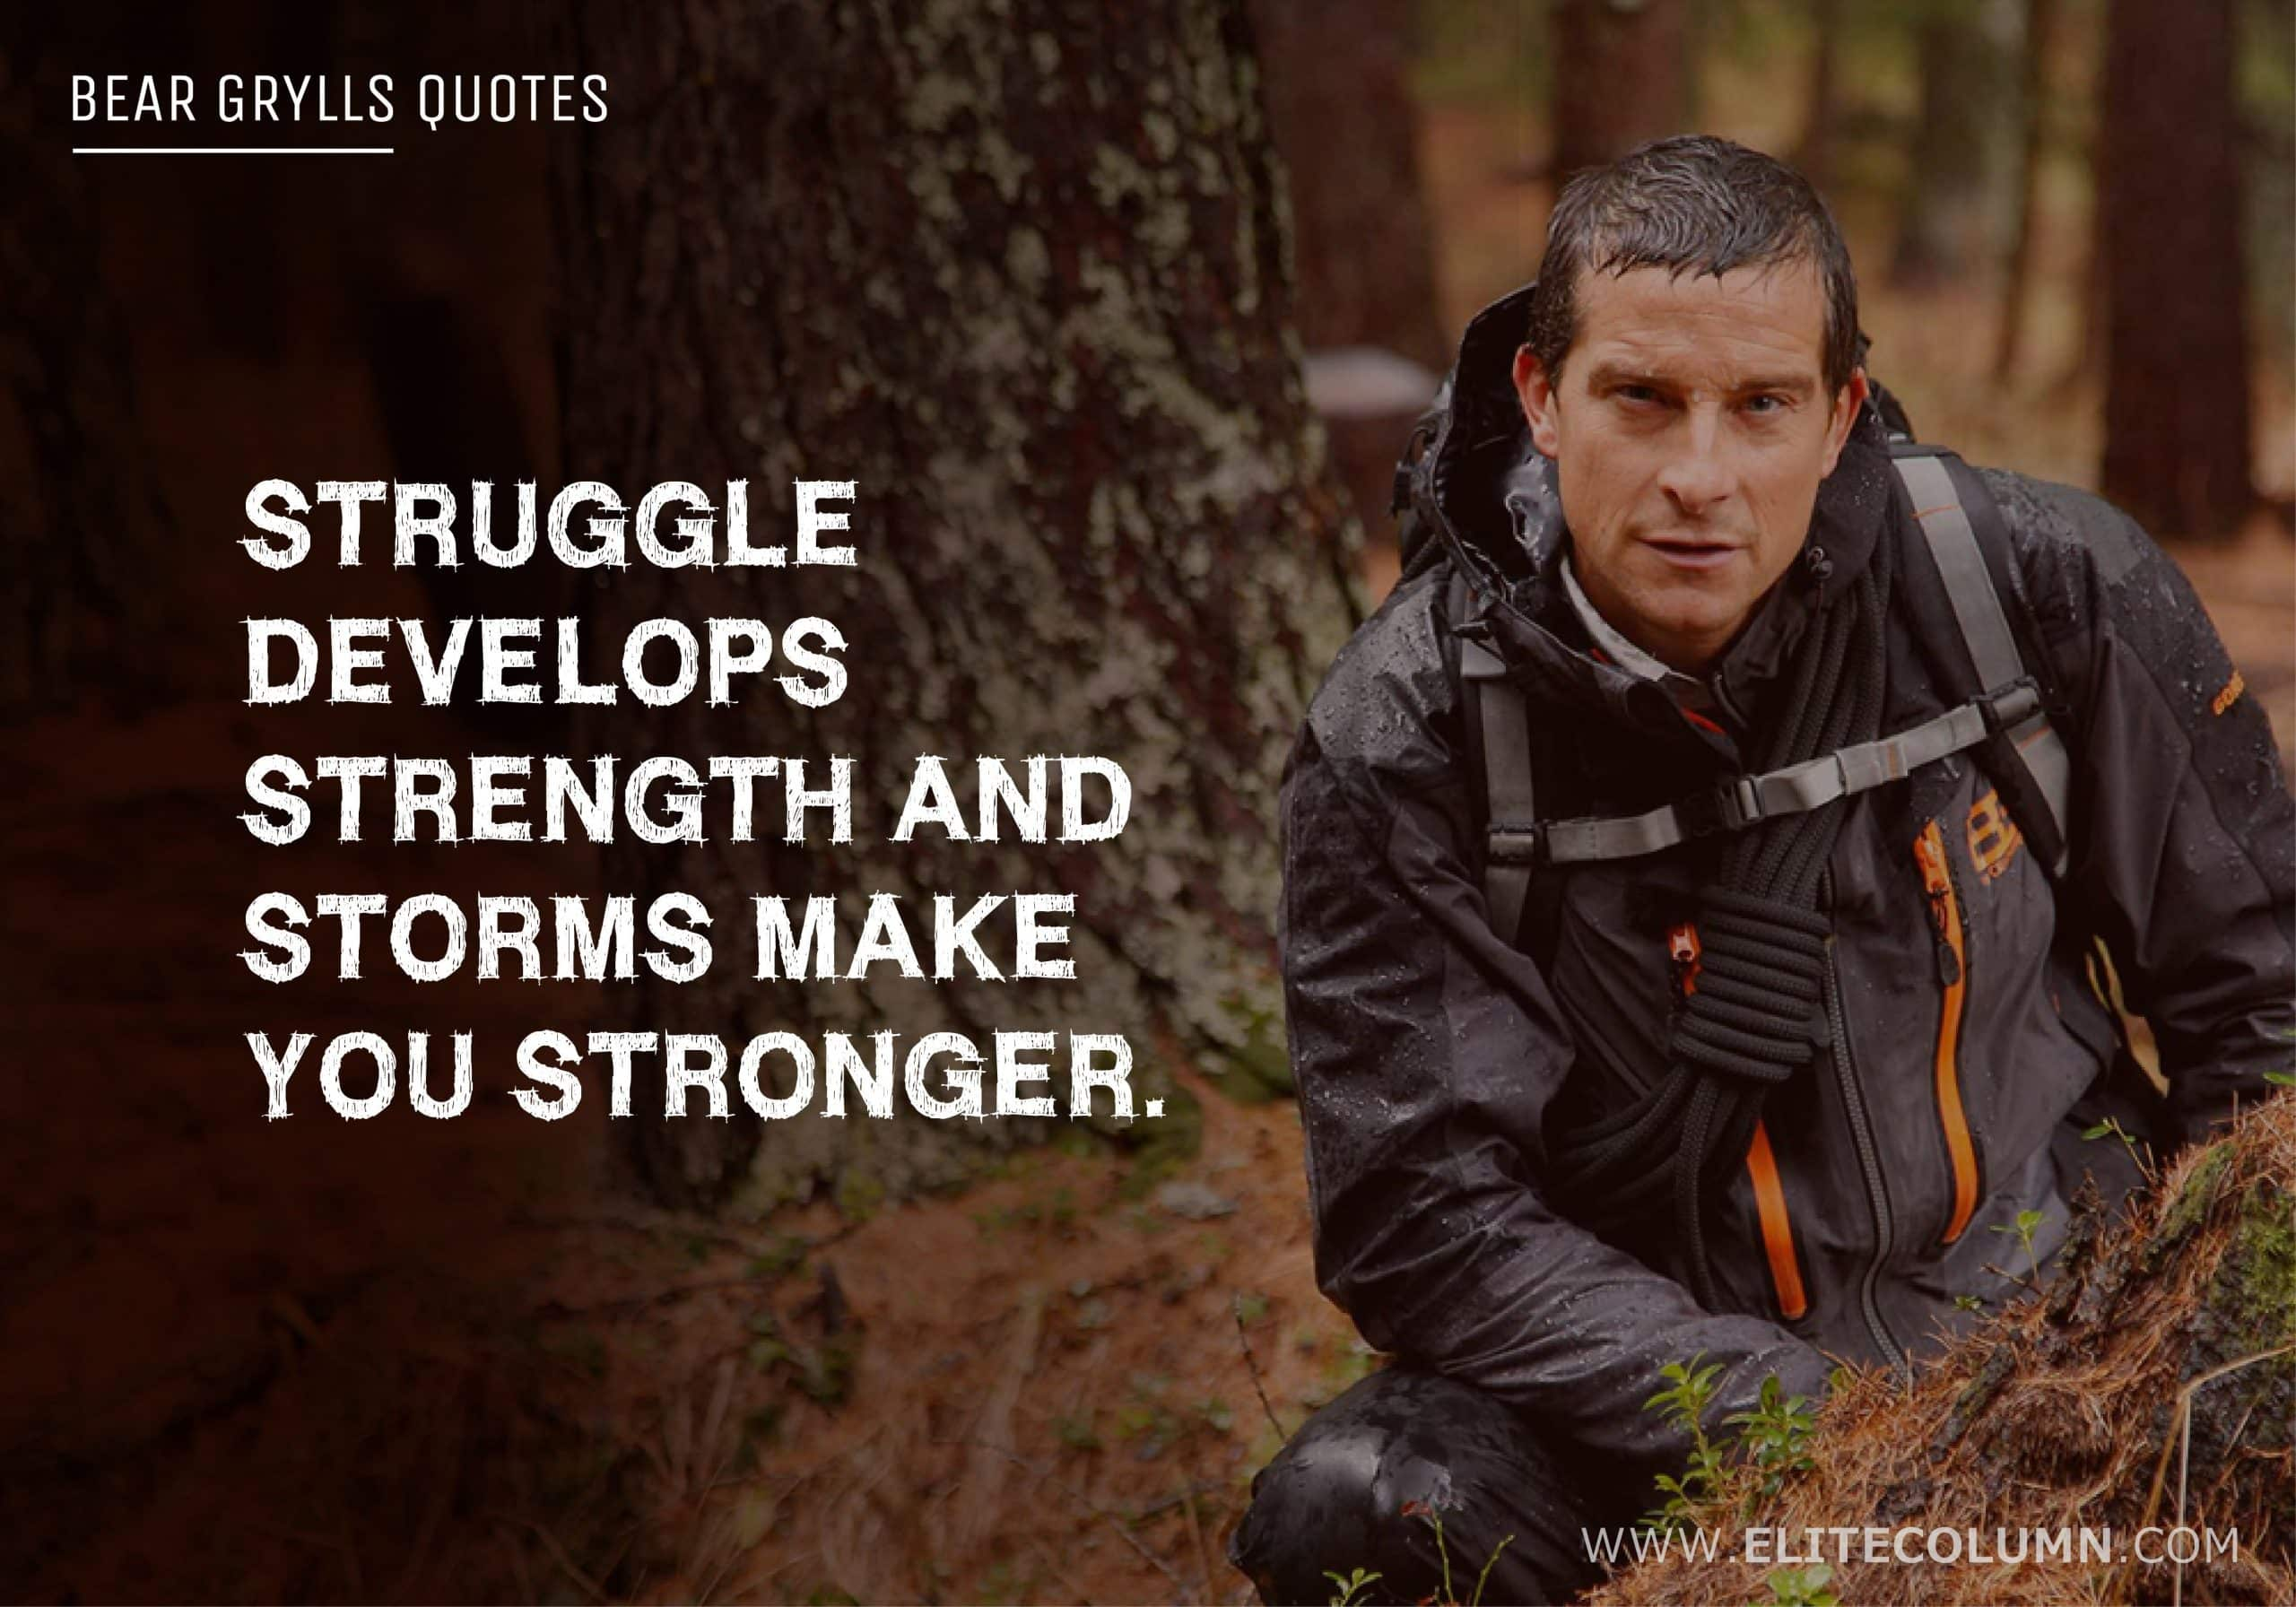 Bear Grylls Quotes (11)